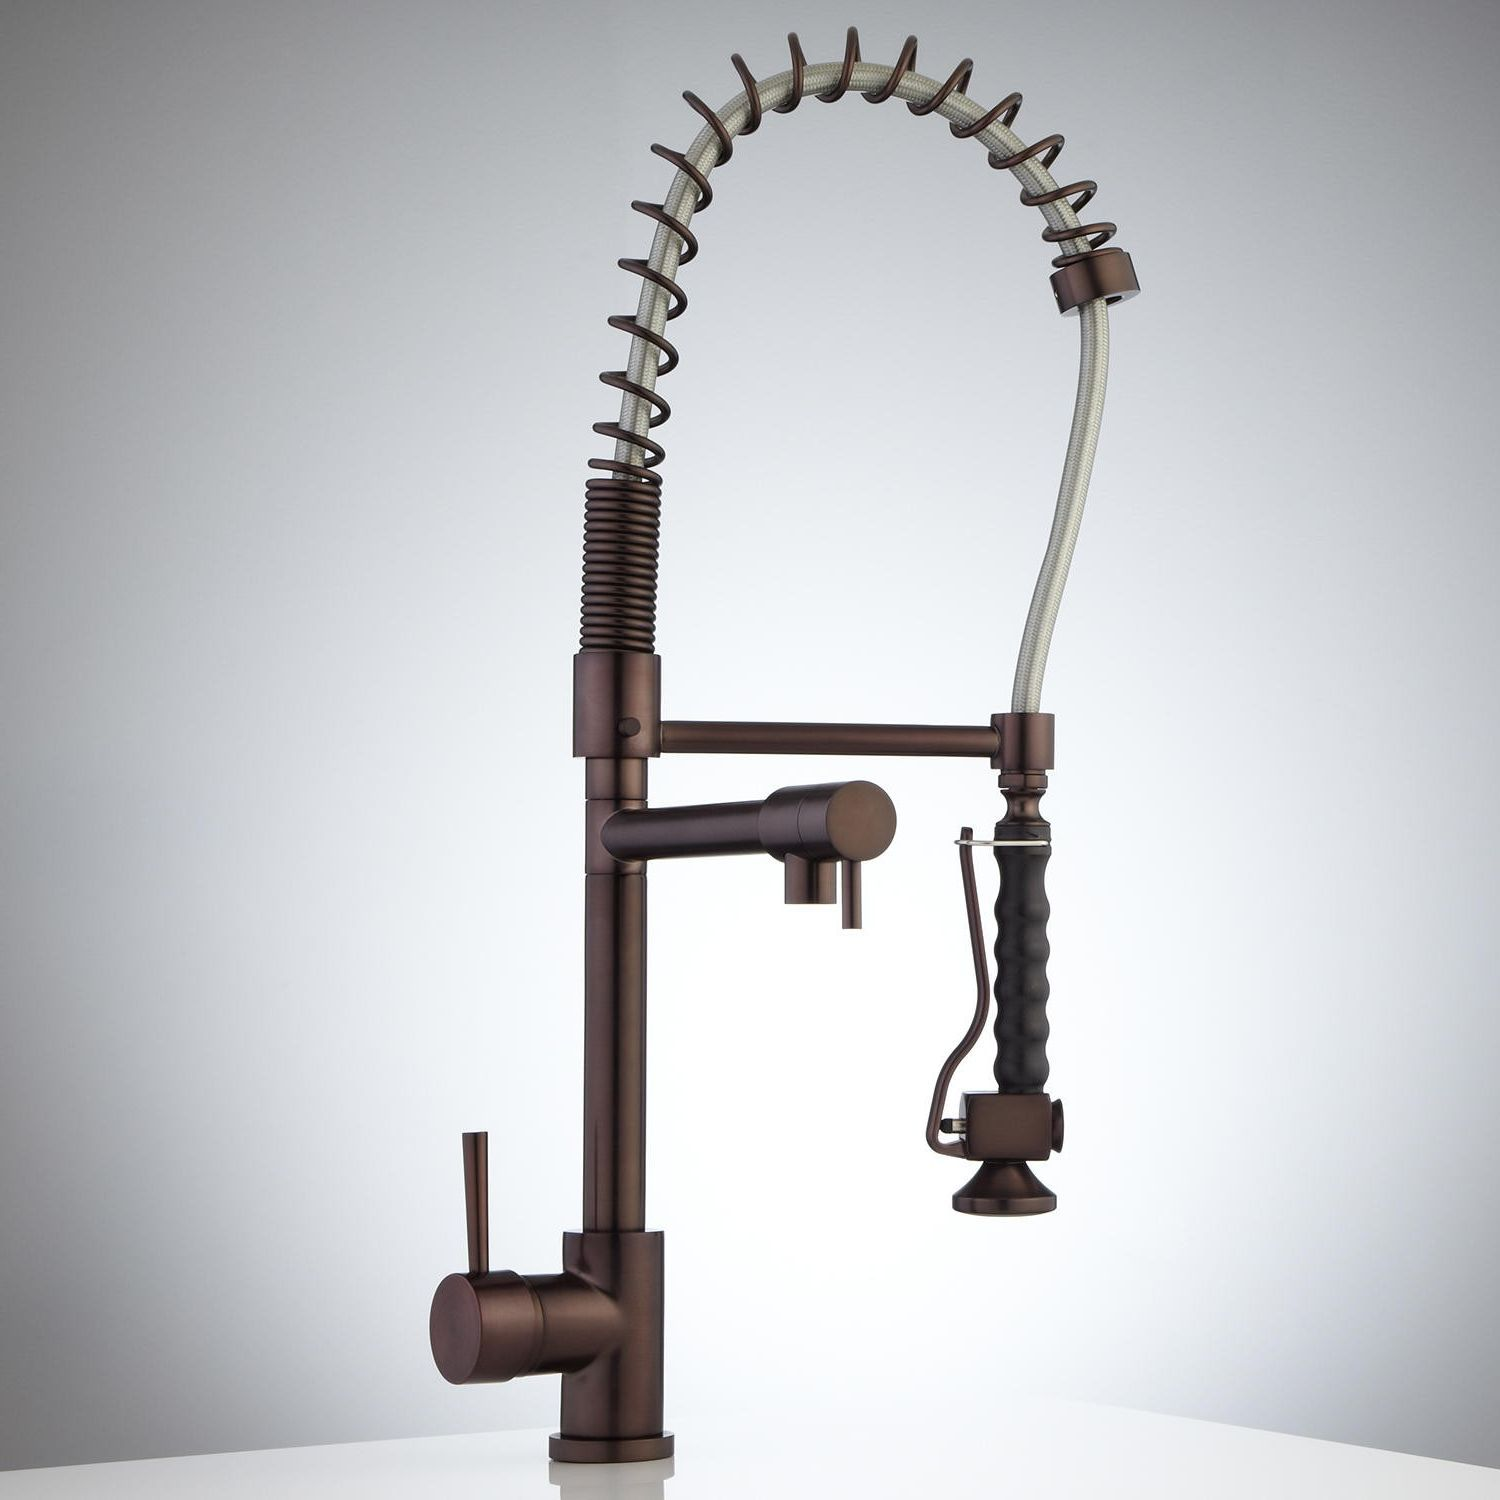 Awesome Good Industrial Kitchen Faucet 31 In Home Decor Ideas With  Industrial Kitchen Faucet Check More At ...